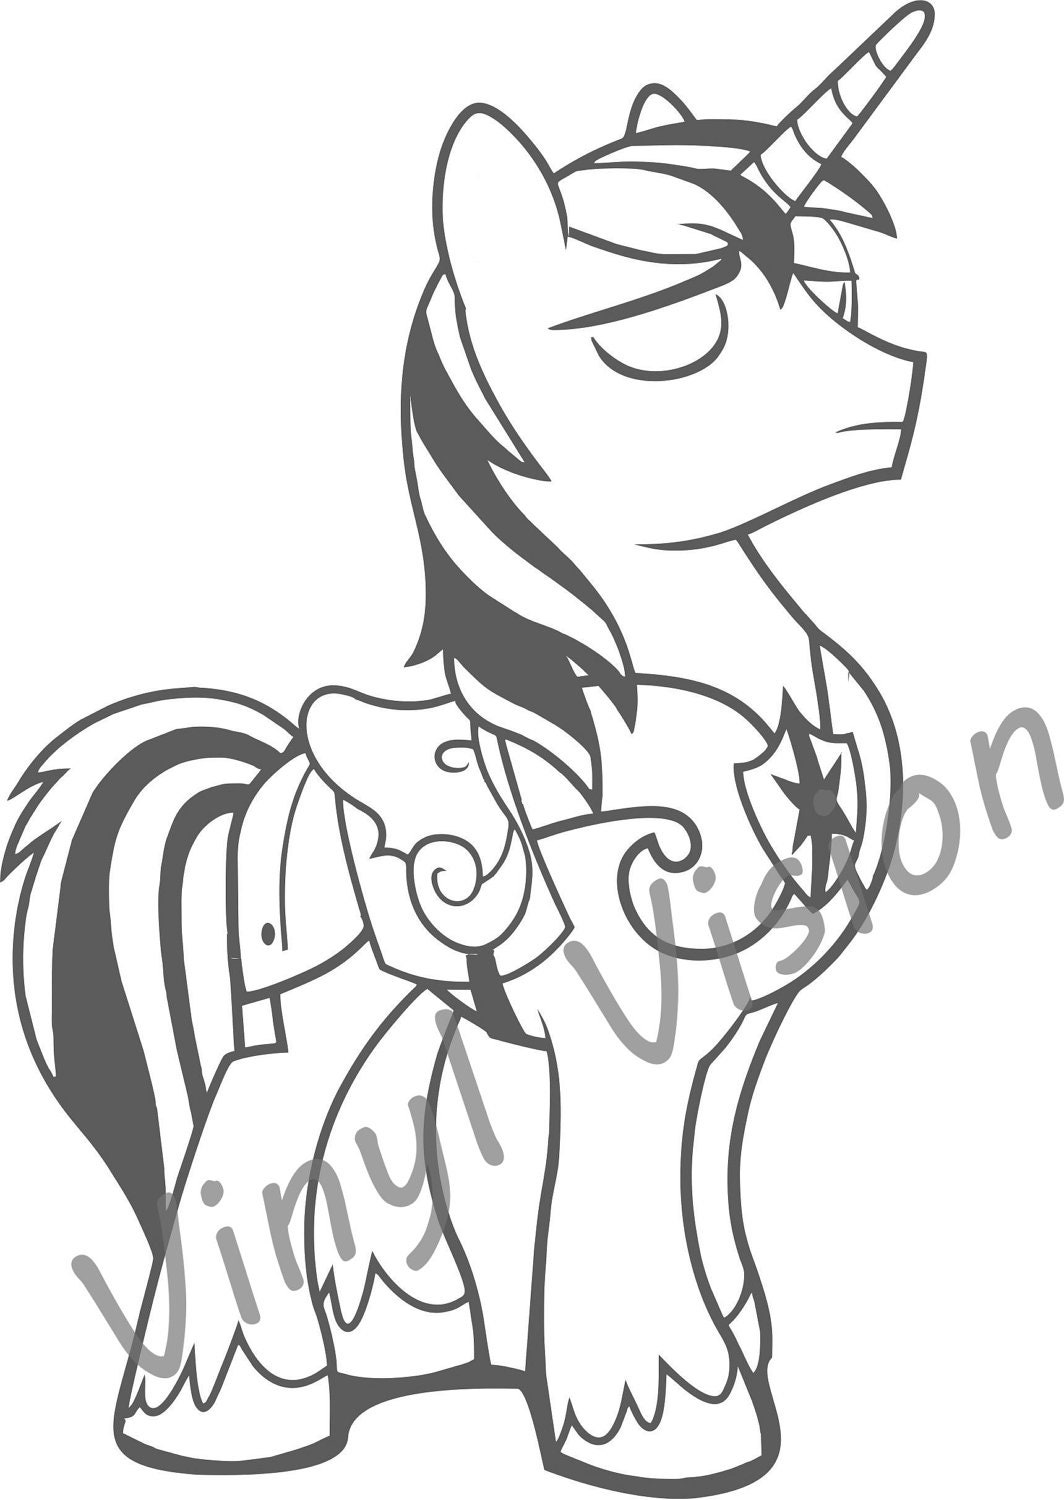 It's just a picture of Wild Shining Armor Coloring Page